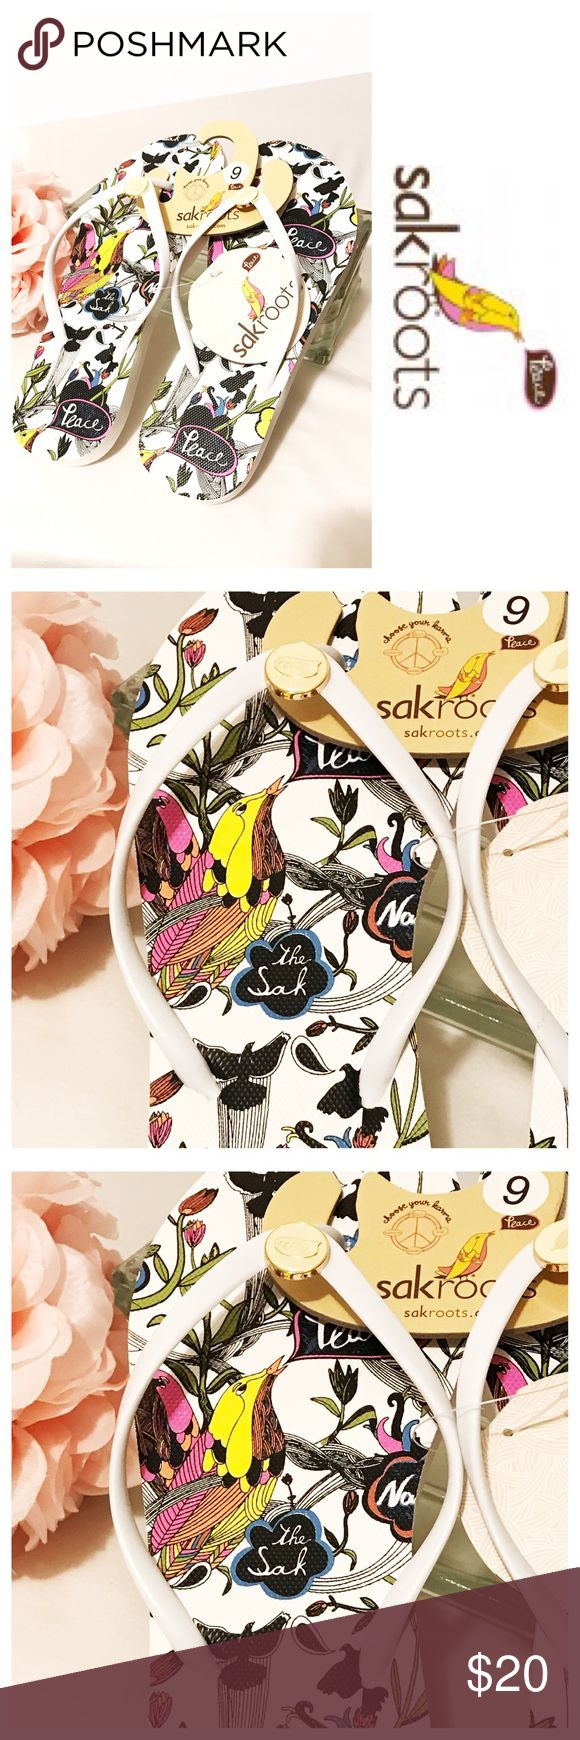 NWT Sakroots Flip Flops Super cute white flip flops with black and white floral and bird pattern with splashes of color and the colorful Sakroots logo bird.  White runner strap with cream colored enamel logo with bird and peace Sakroots Shoes Sandals